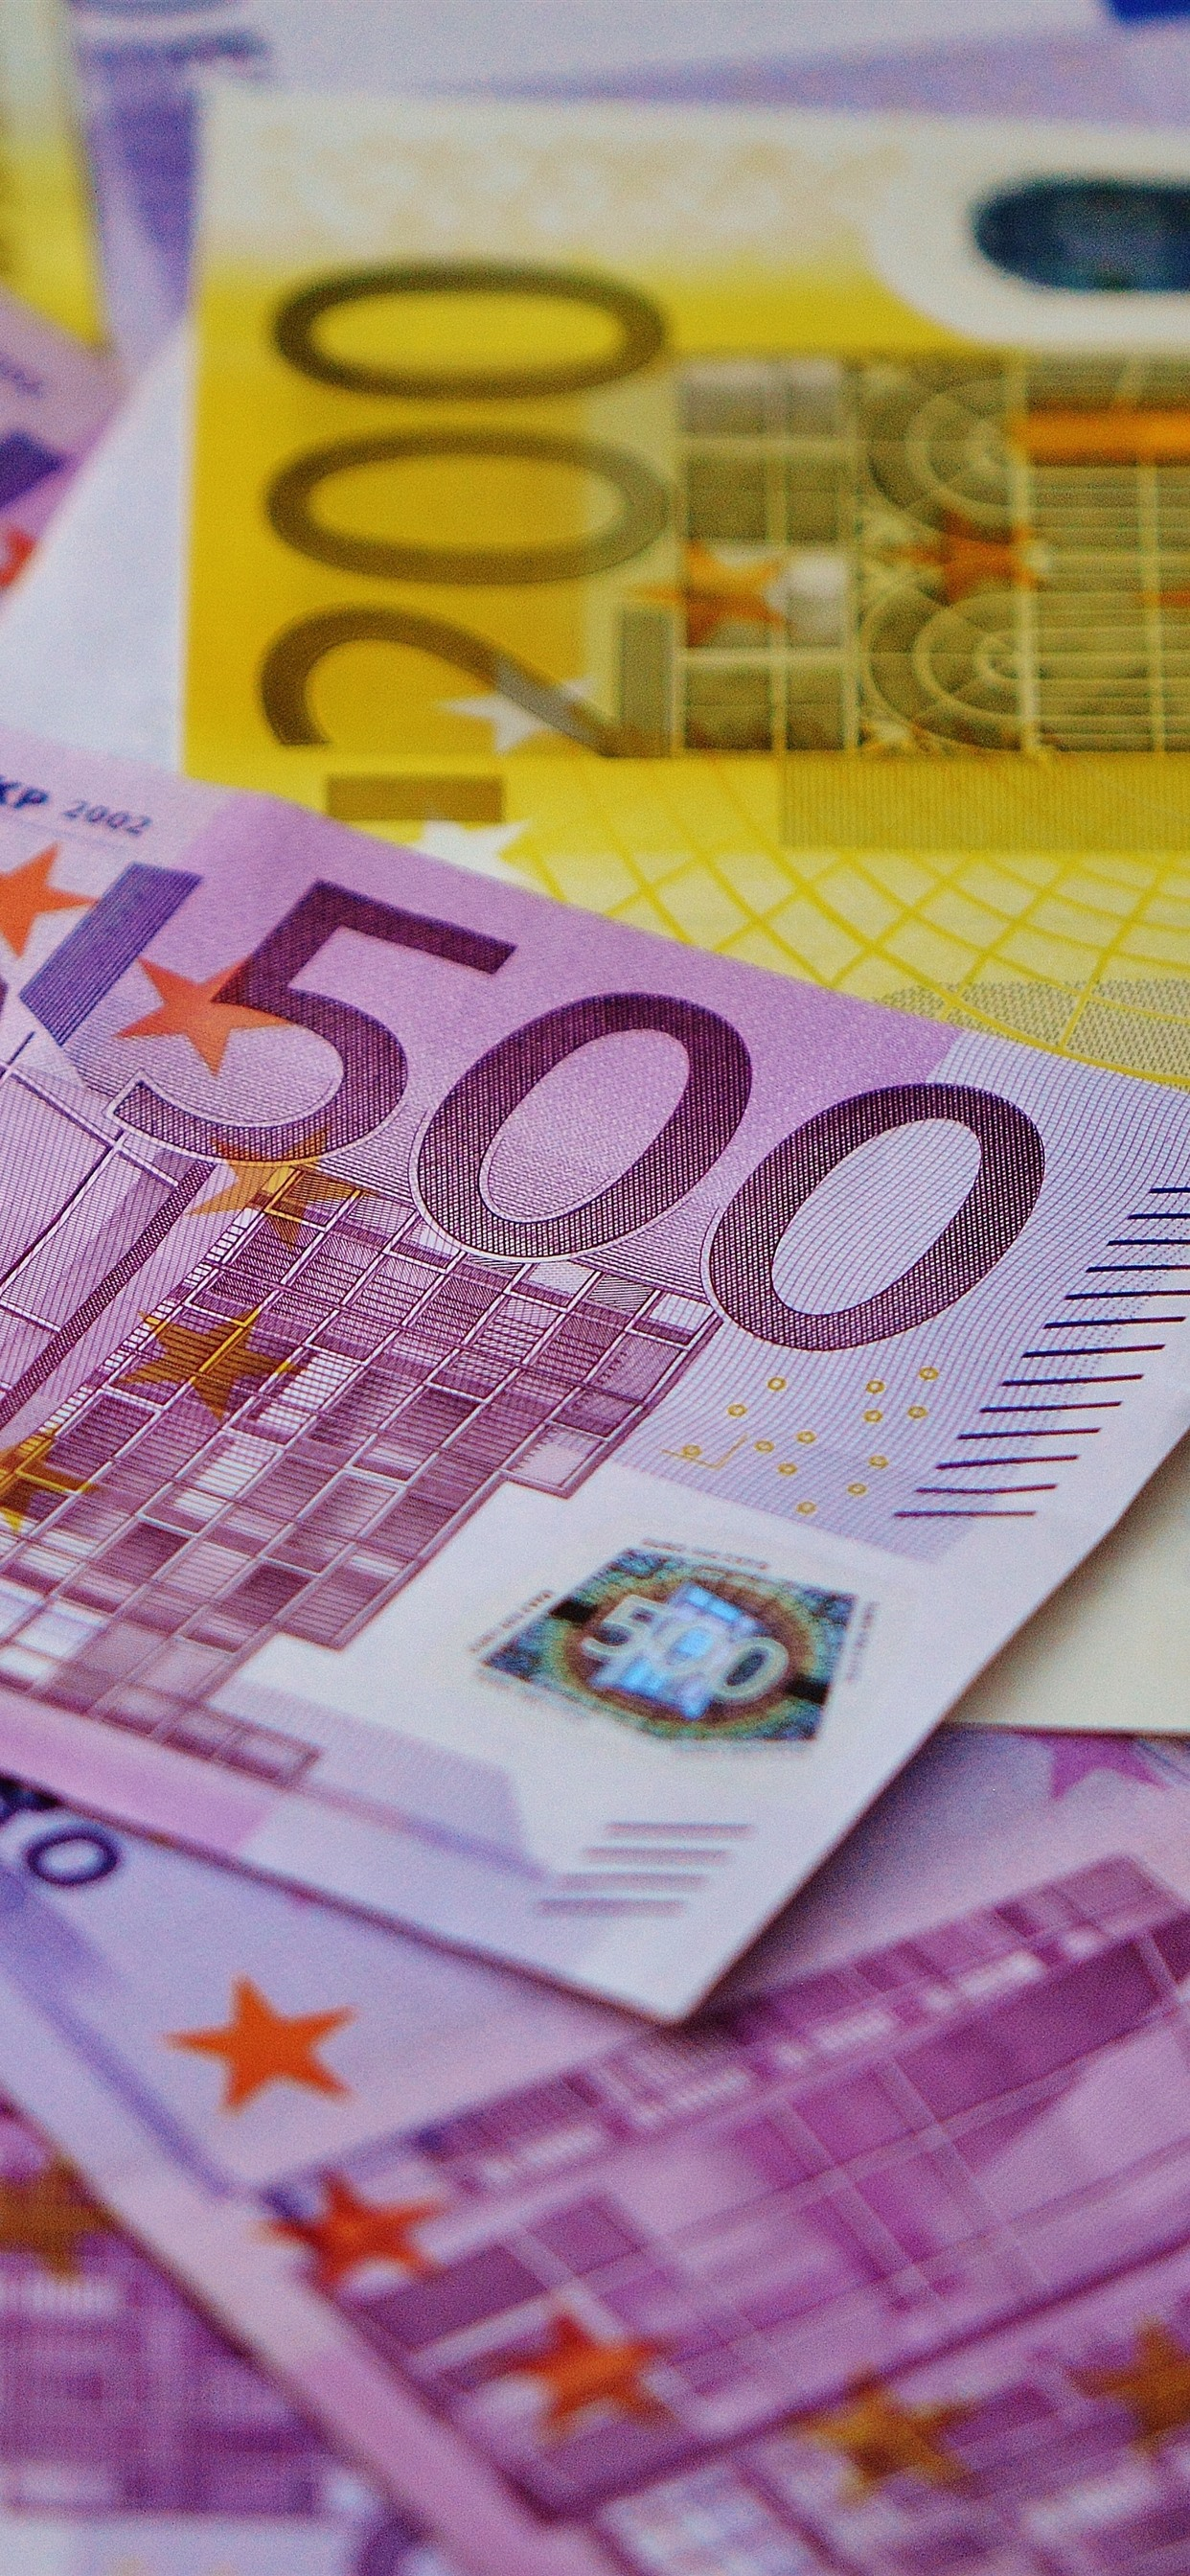 Euro Money Paper Currency 1242x2688 Iphone 11 Pro Xs Max Wallpaper Background Picture Image